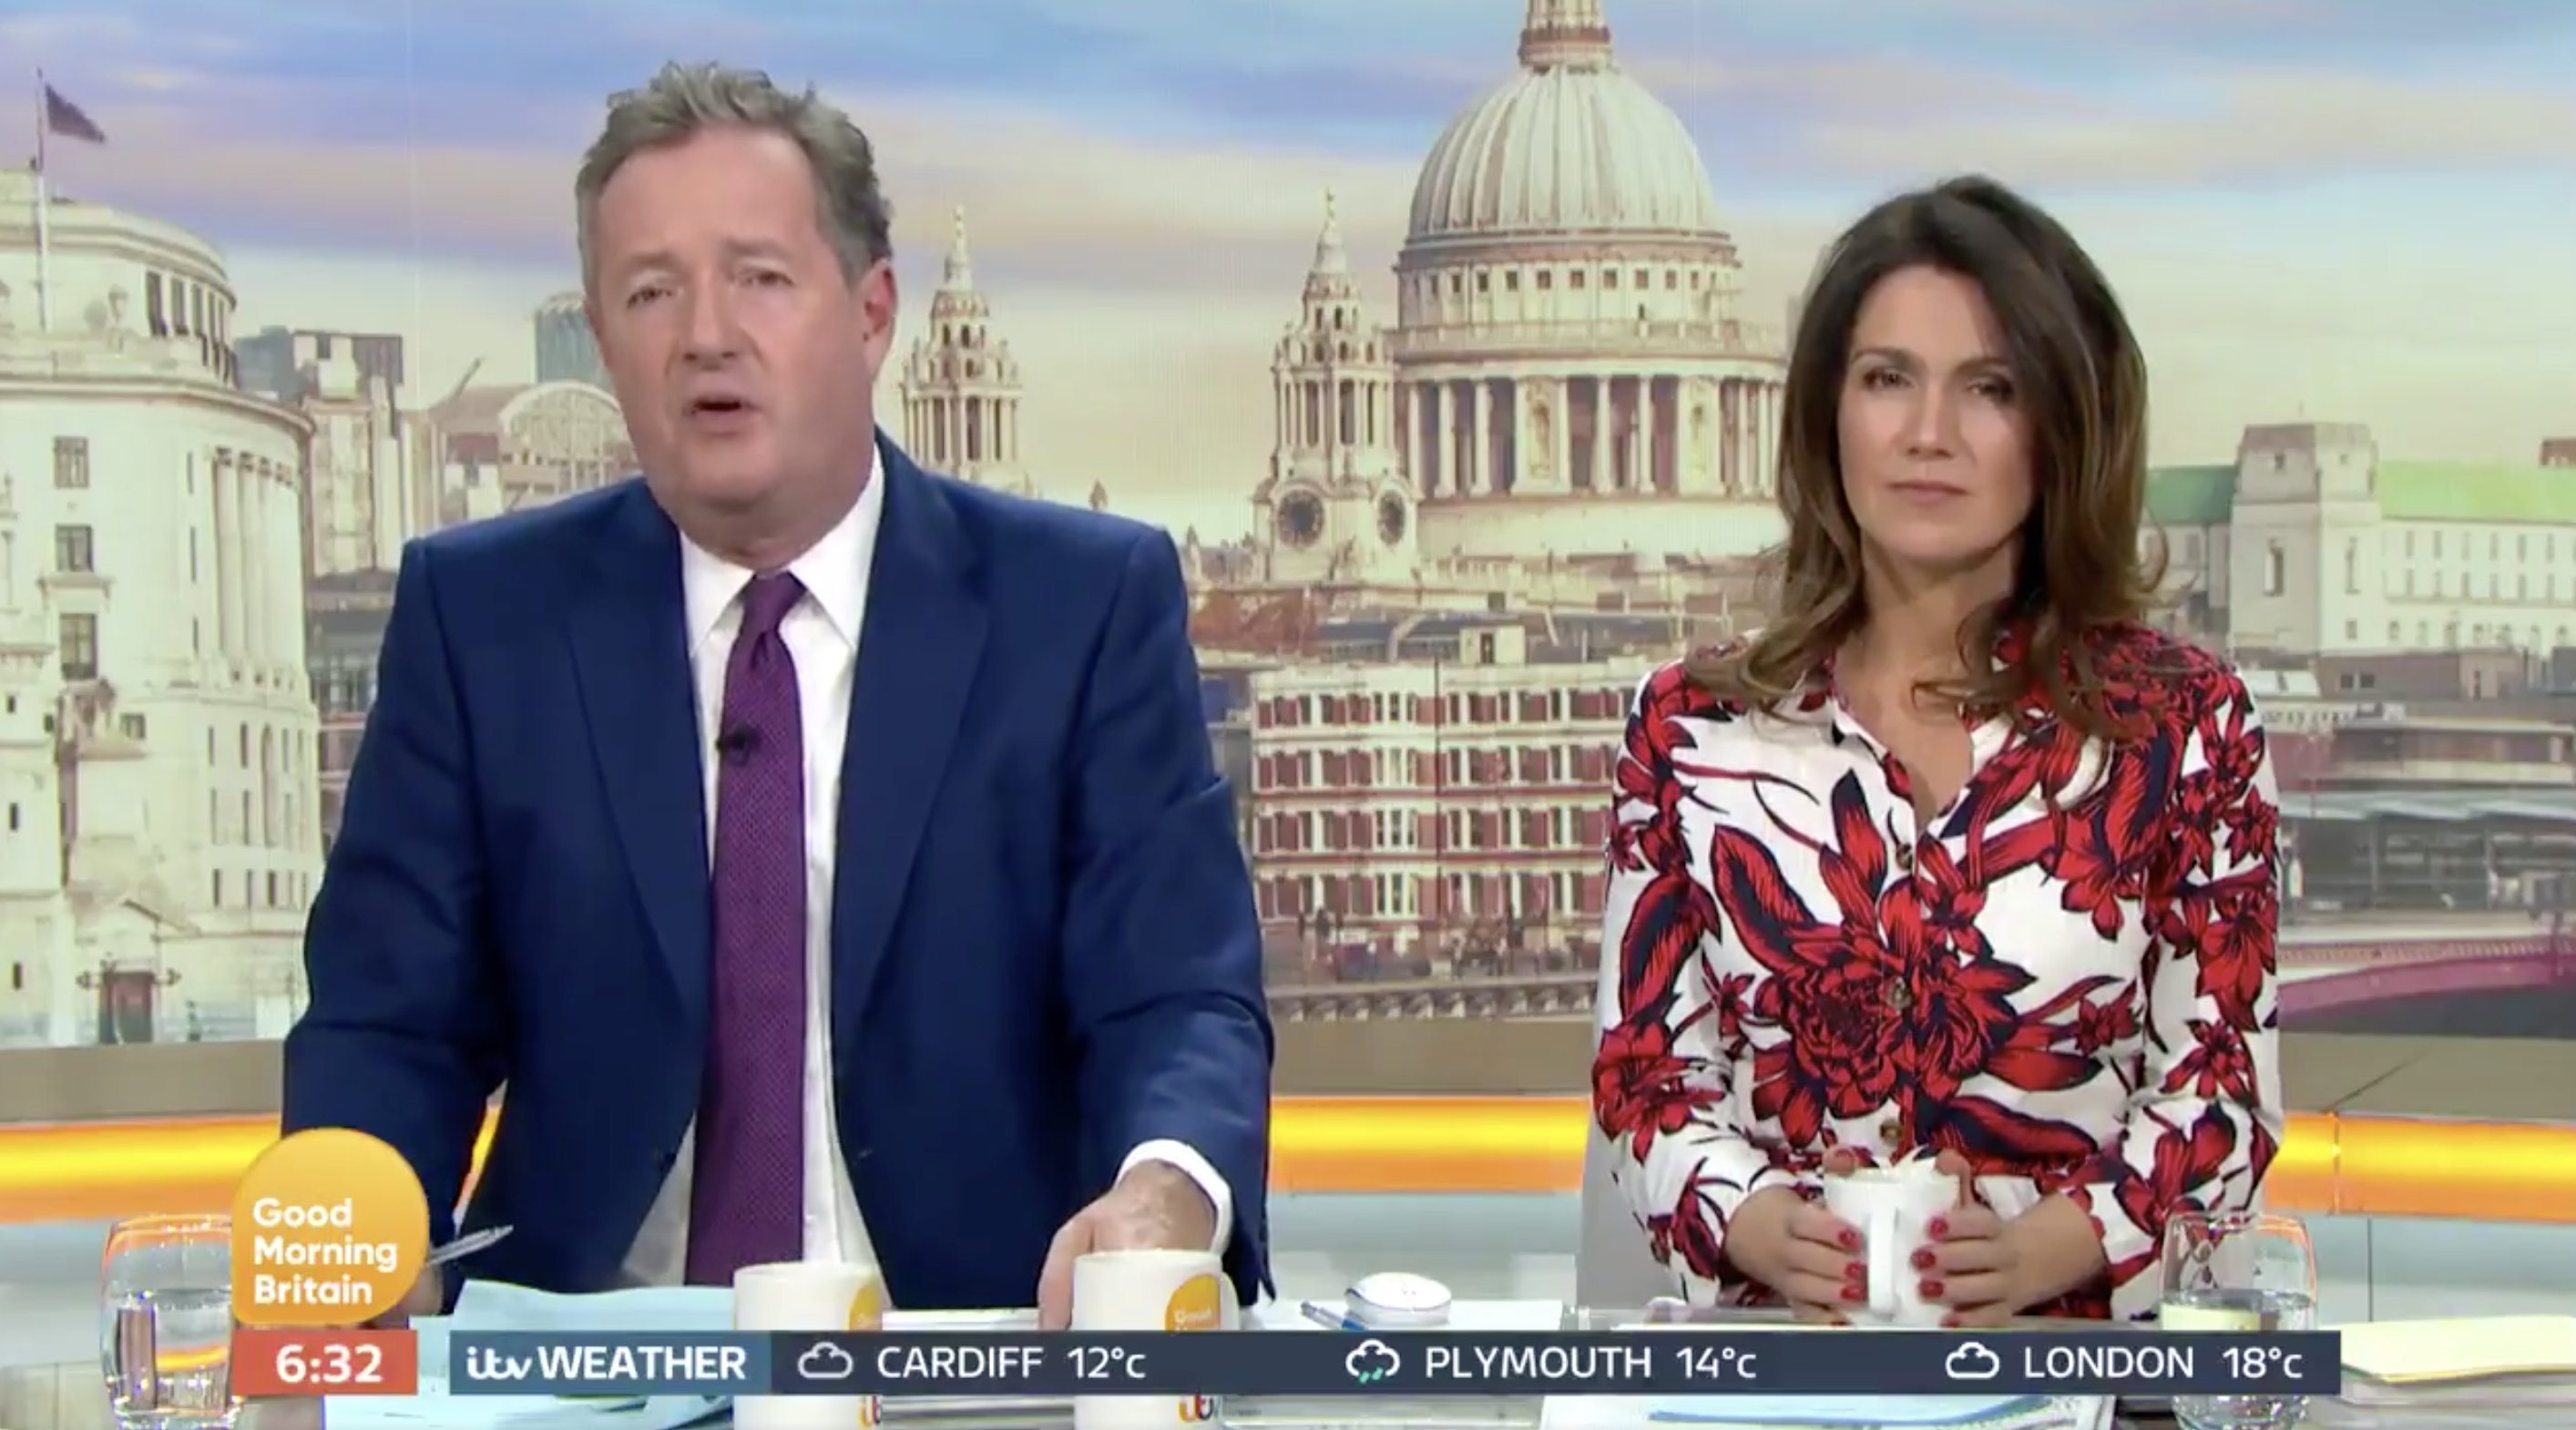 Piers Morgan argued the BBC should be forced to do a U-turn over its decision to scrap free TV licenses for over-75s